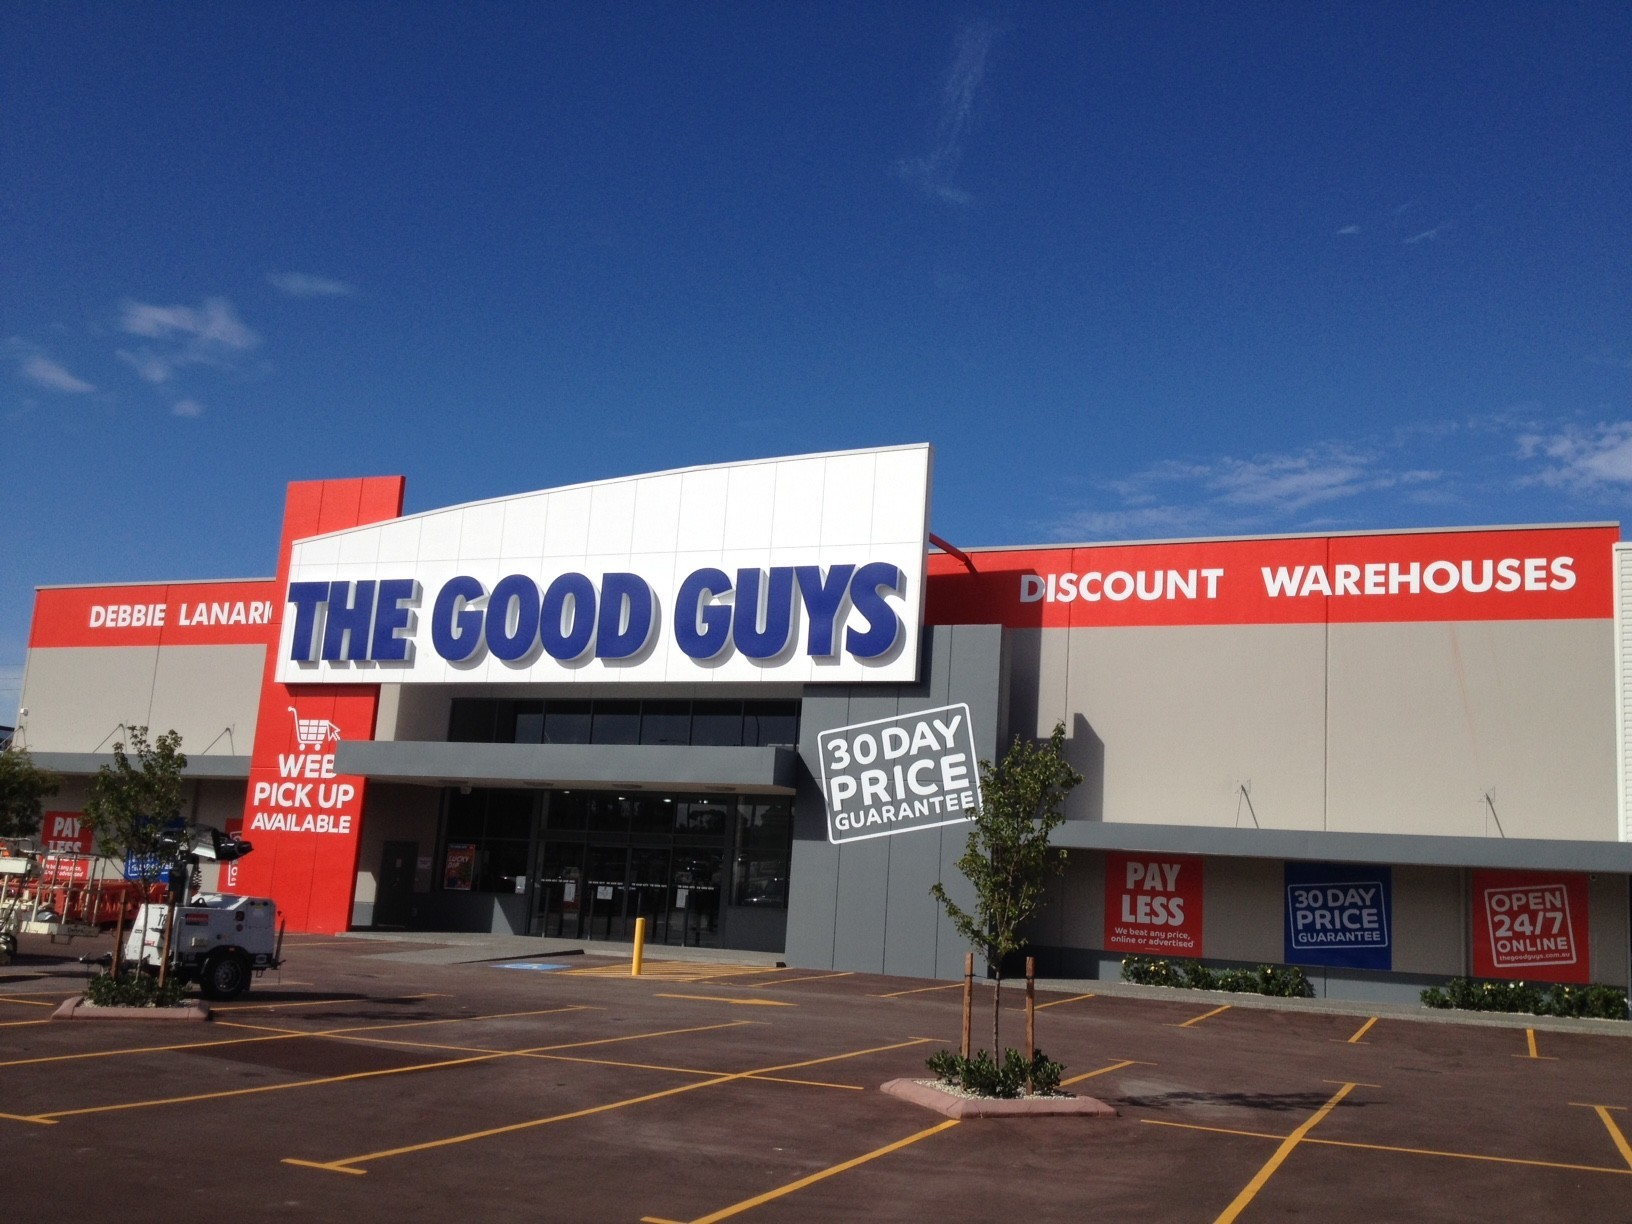 The Good Guys storefront